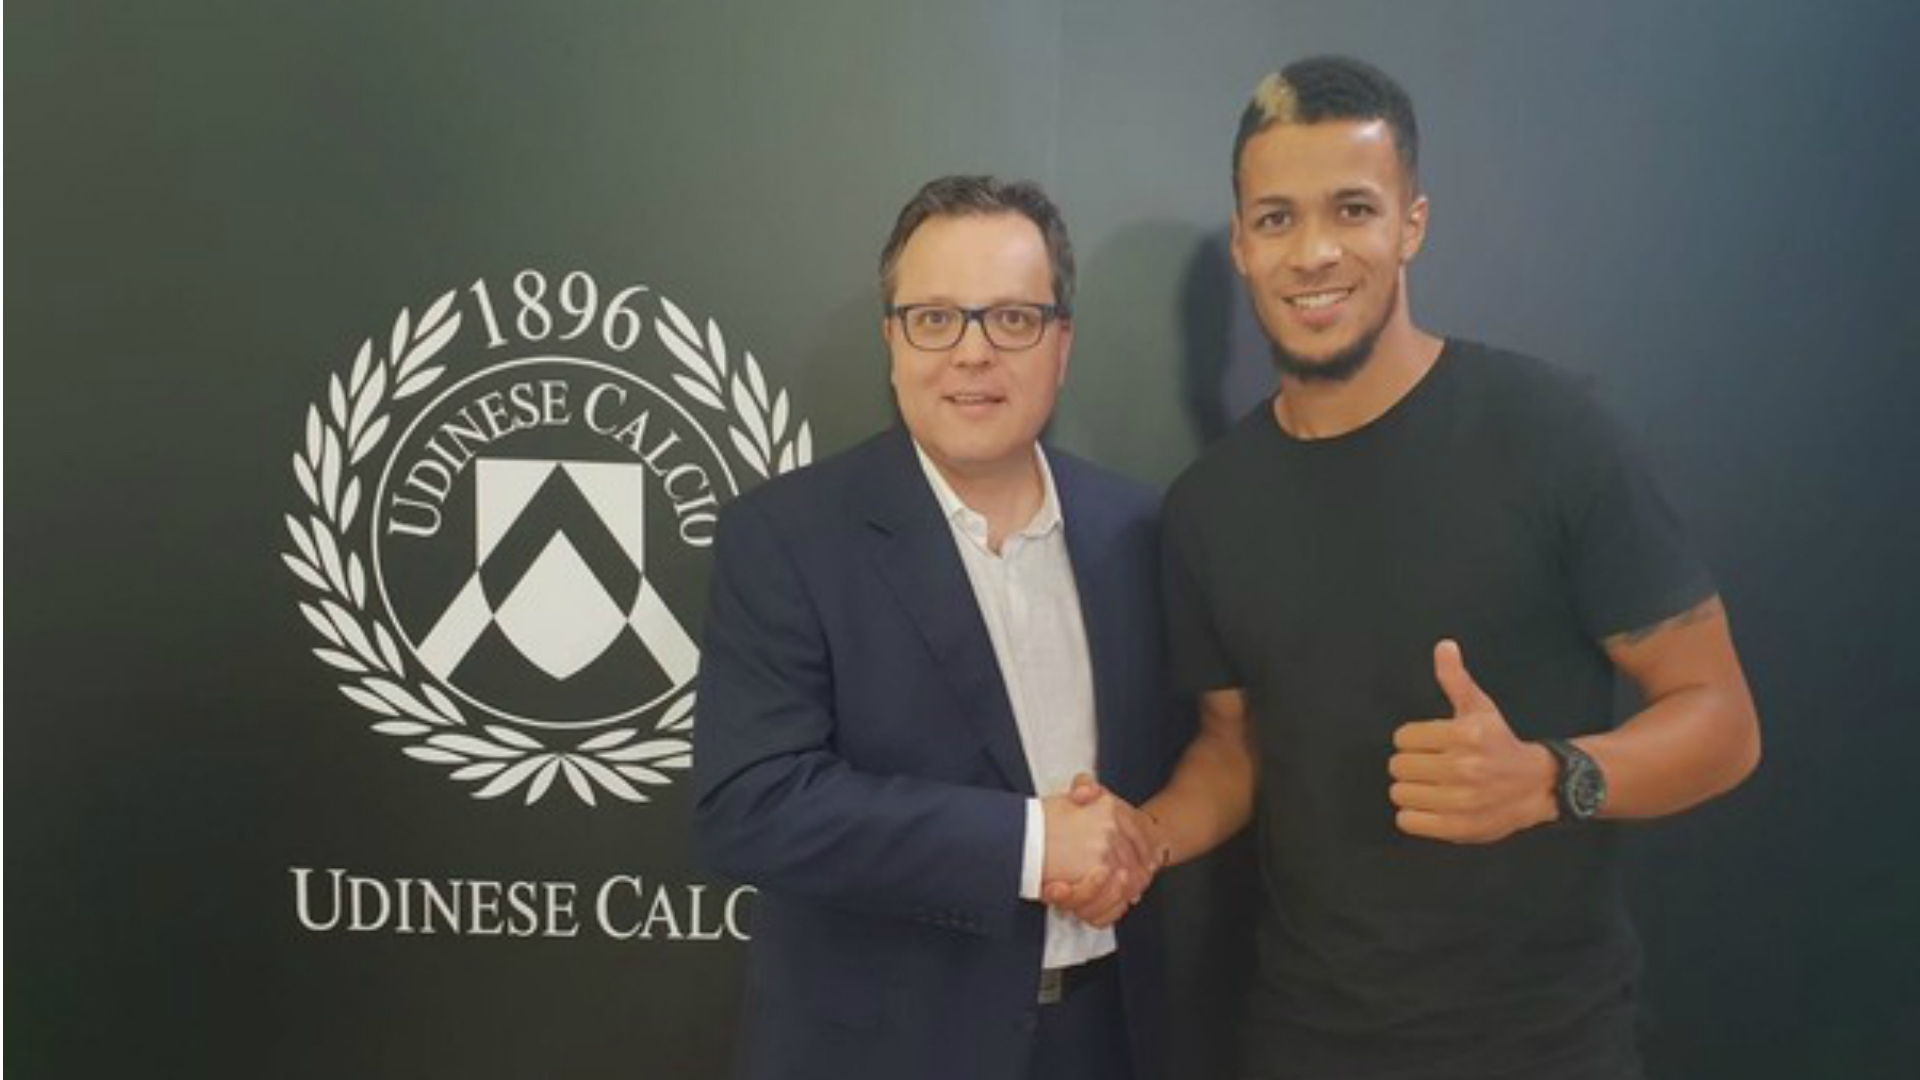 William Troost-Ekong - Udinese